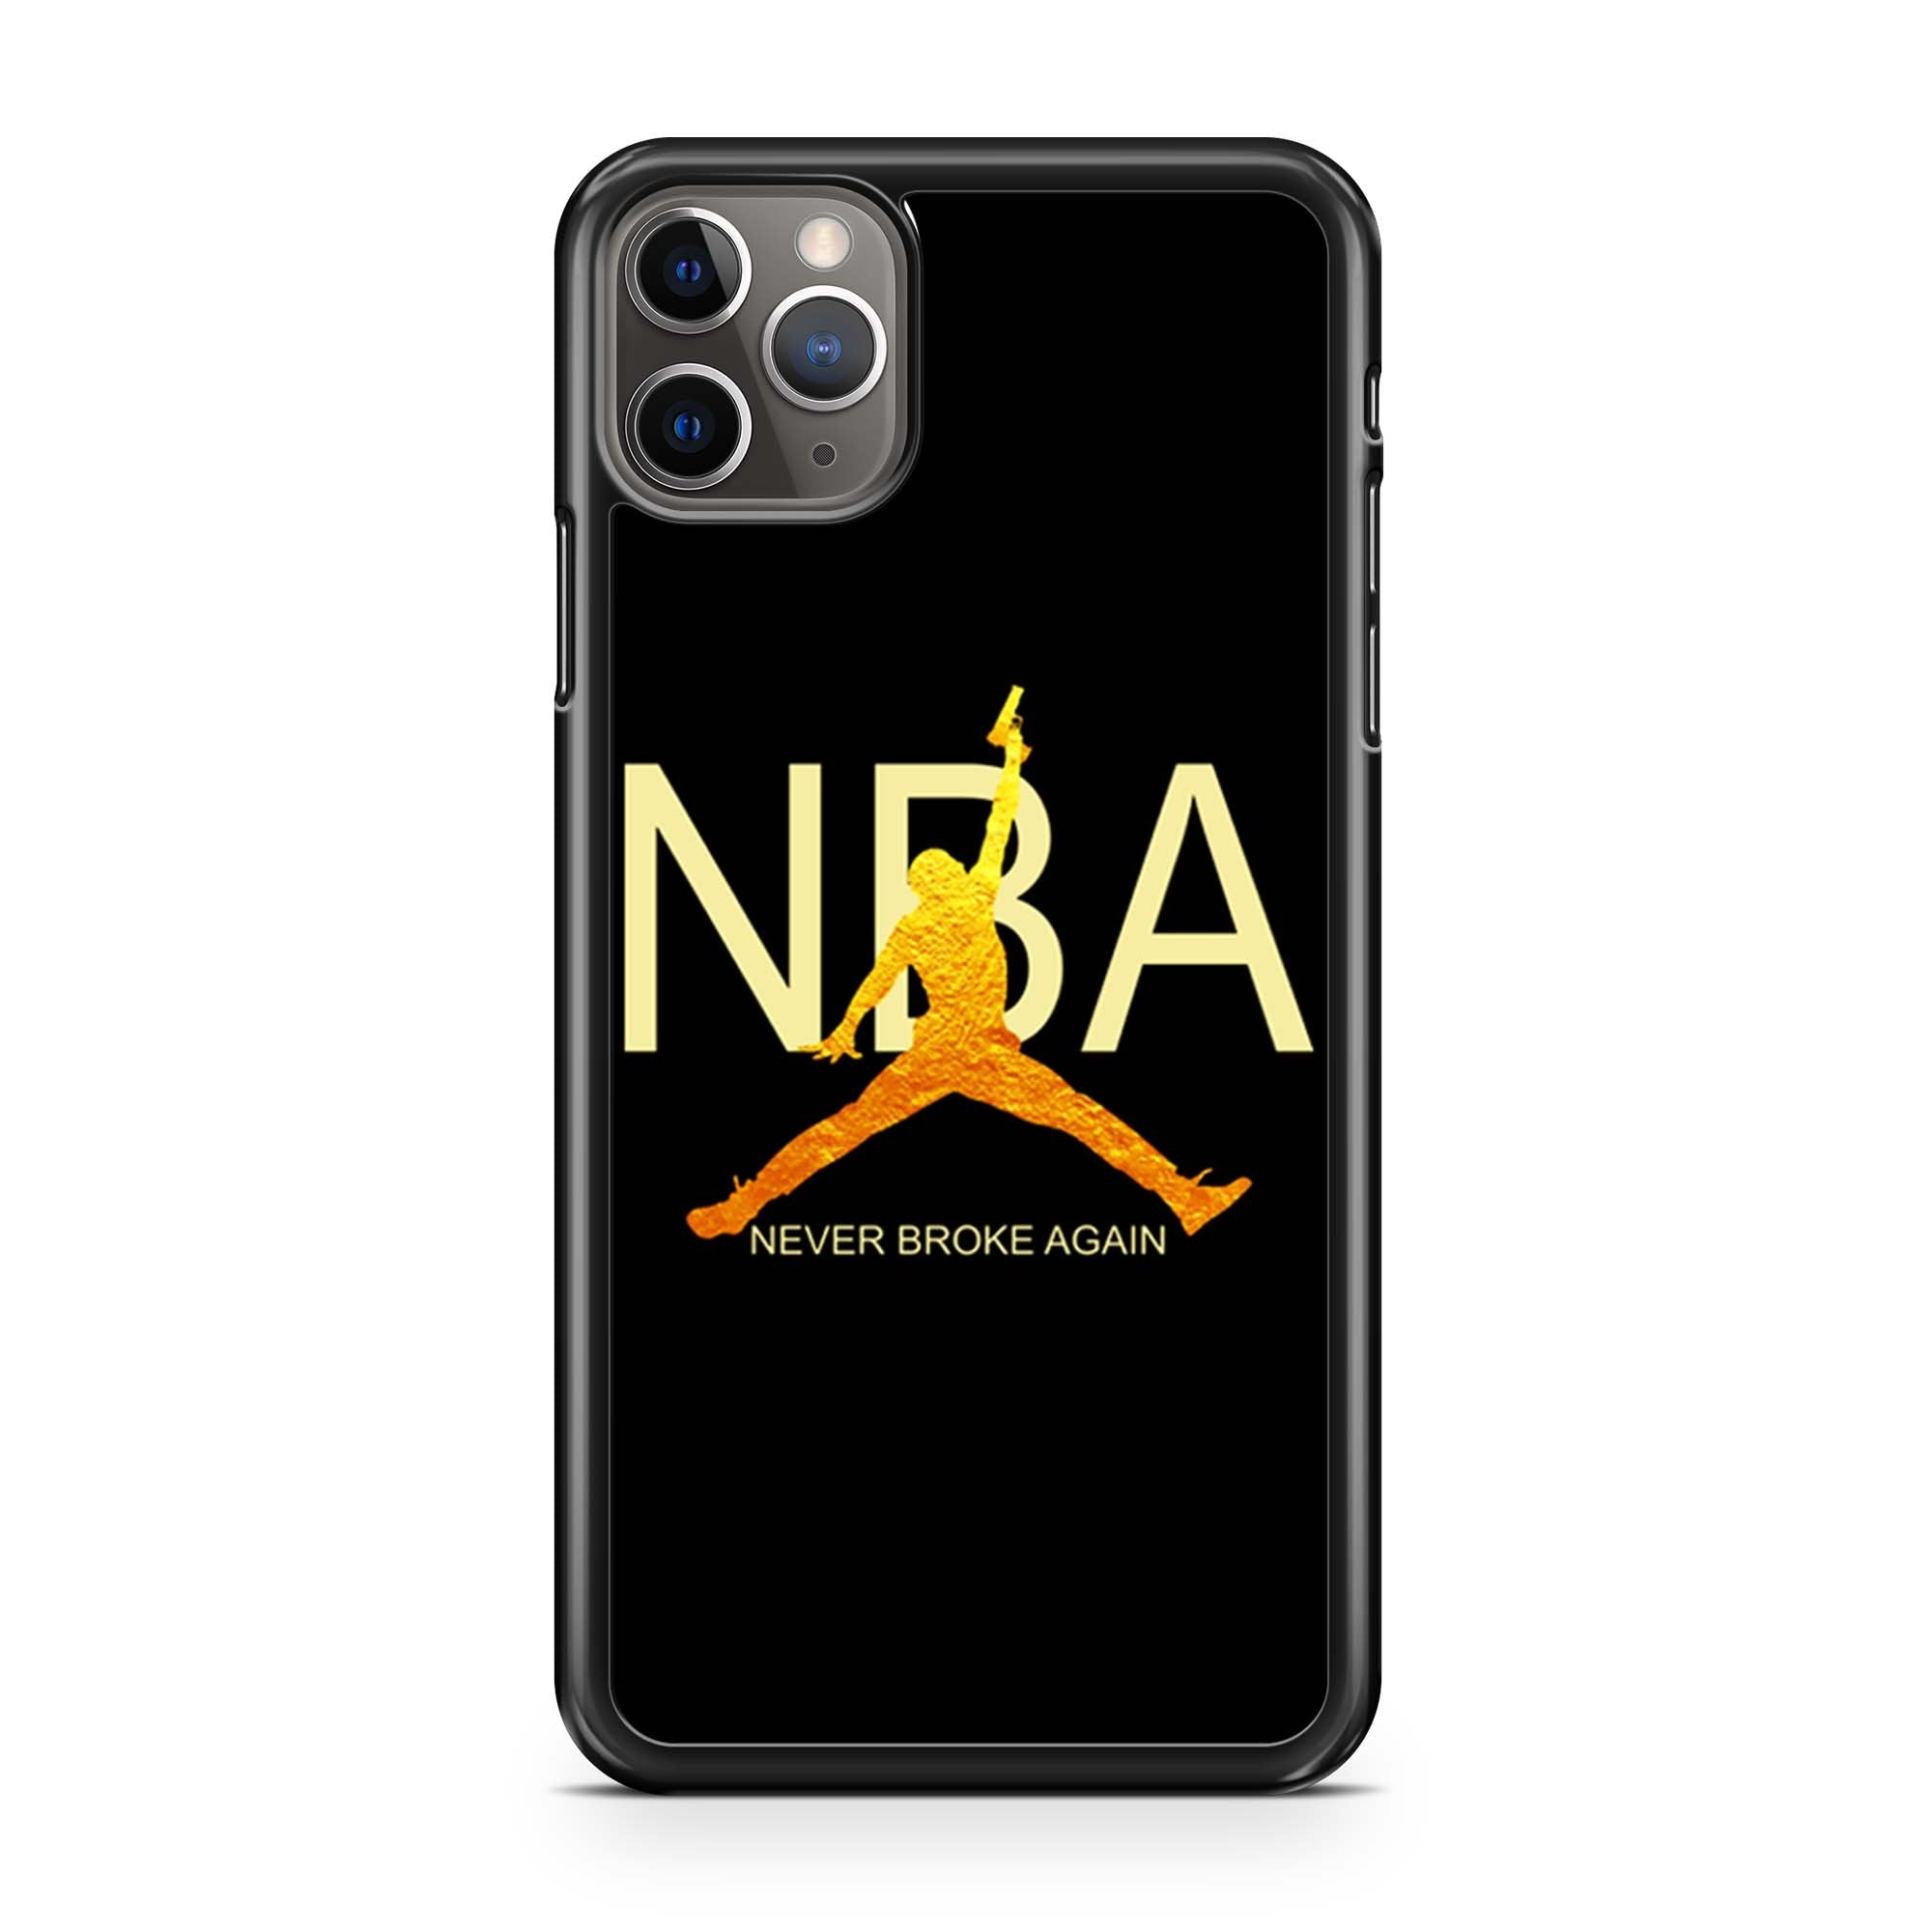 Nba Gold Logoyoungboy Never Broke Again iPhone 11 Pro Max Case